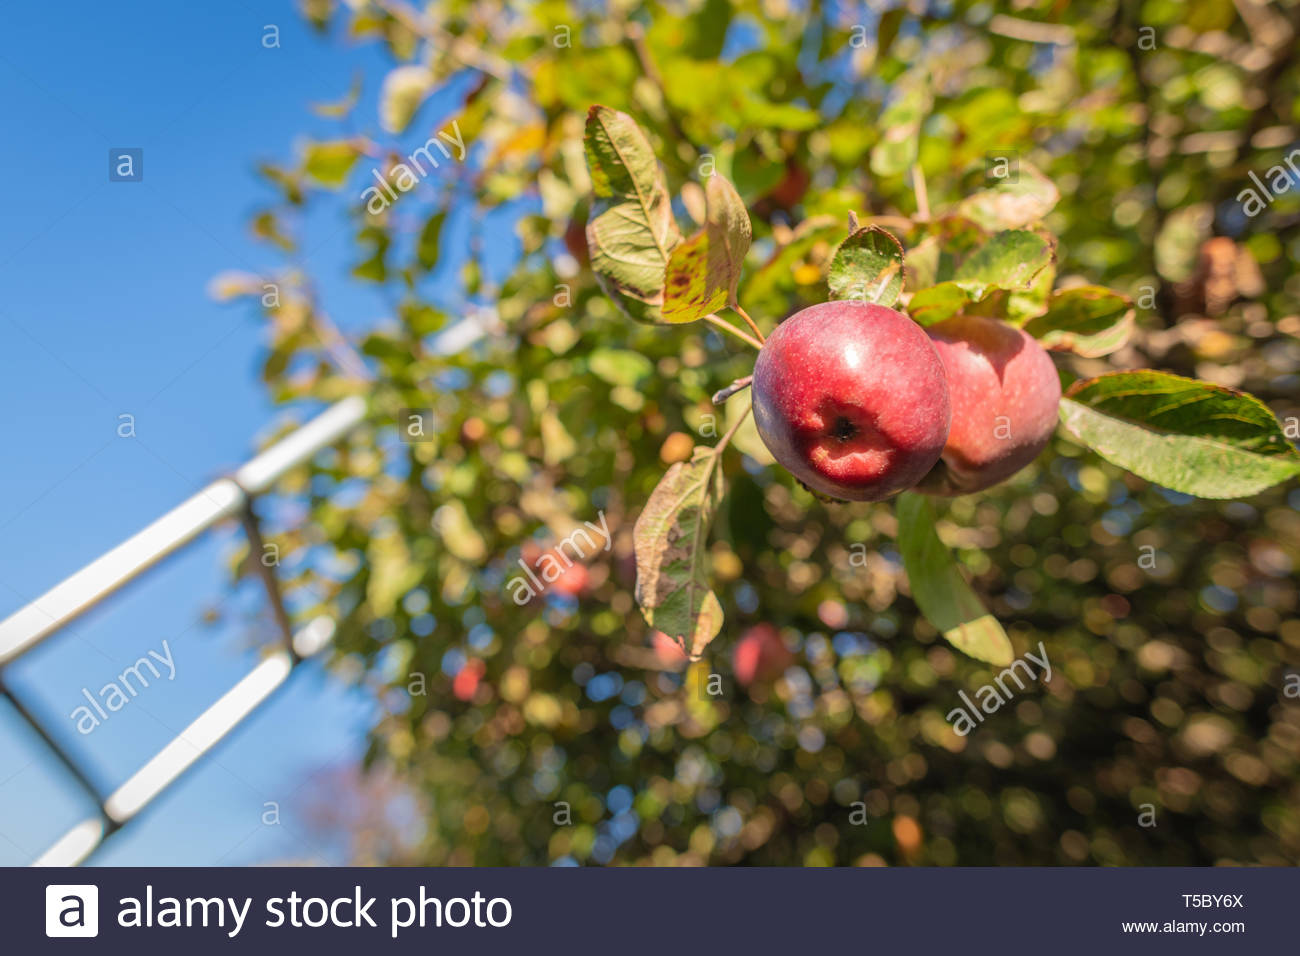 Using a ladder to reach apples high on an apple tree. - Stock Image